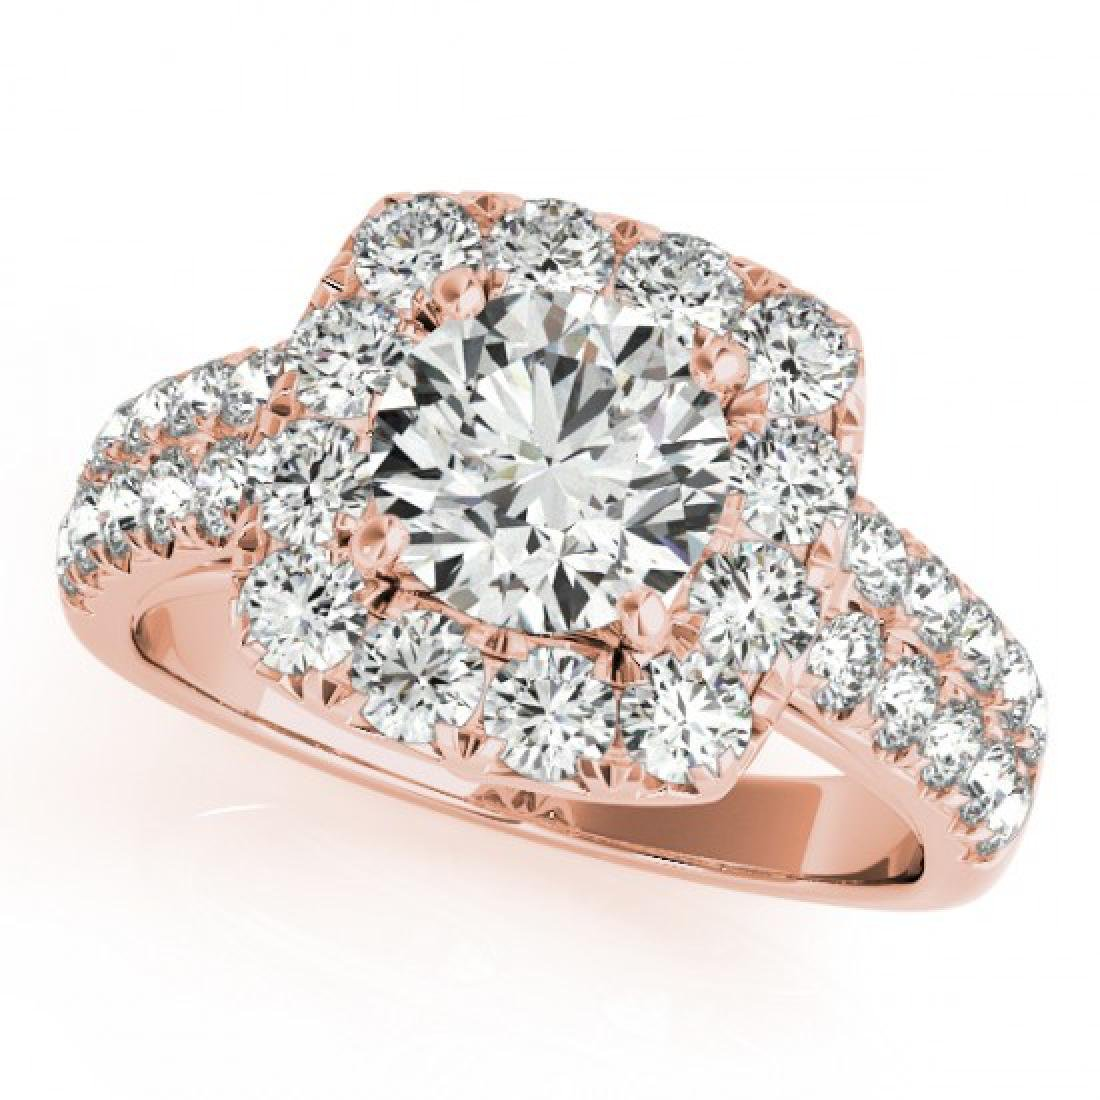 2.5 CTW Certified VS/SI Diamond Solitaire Halo Ring 14K